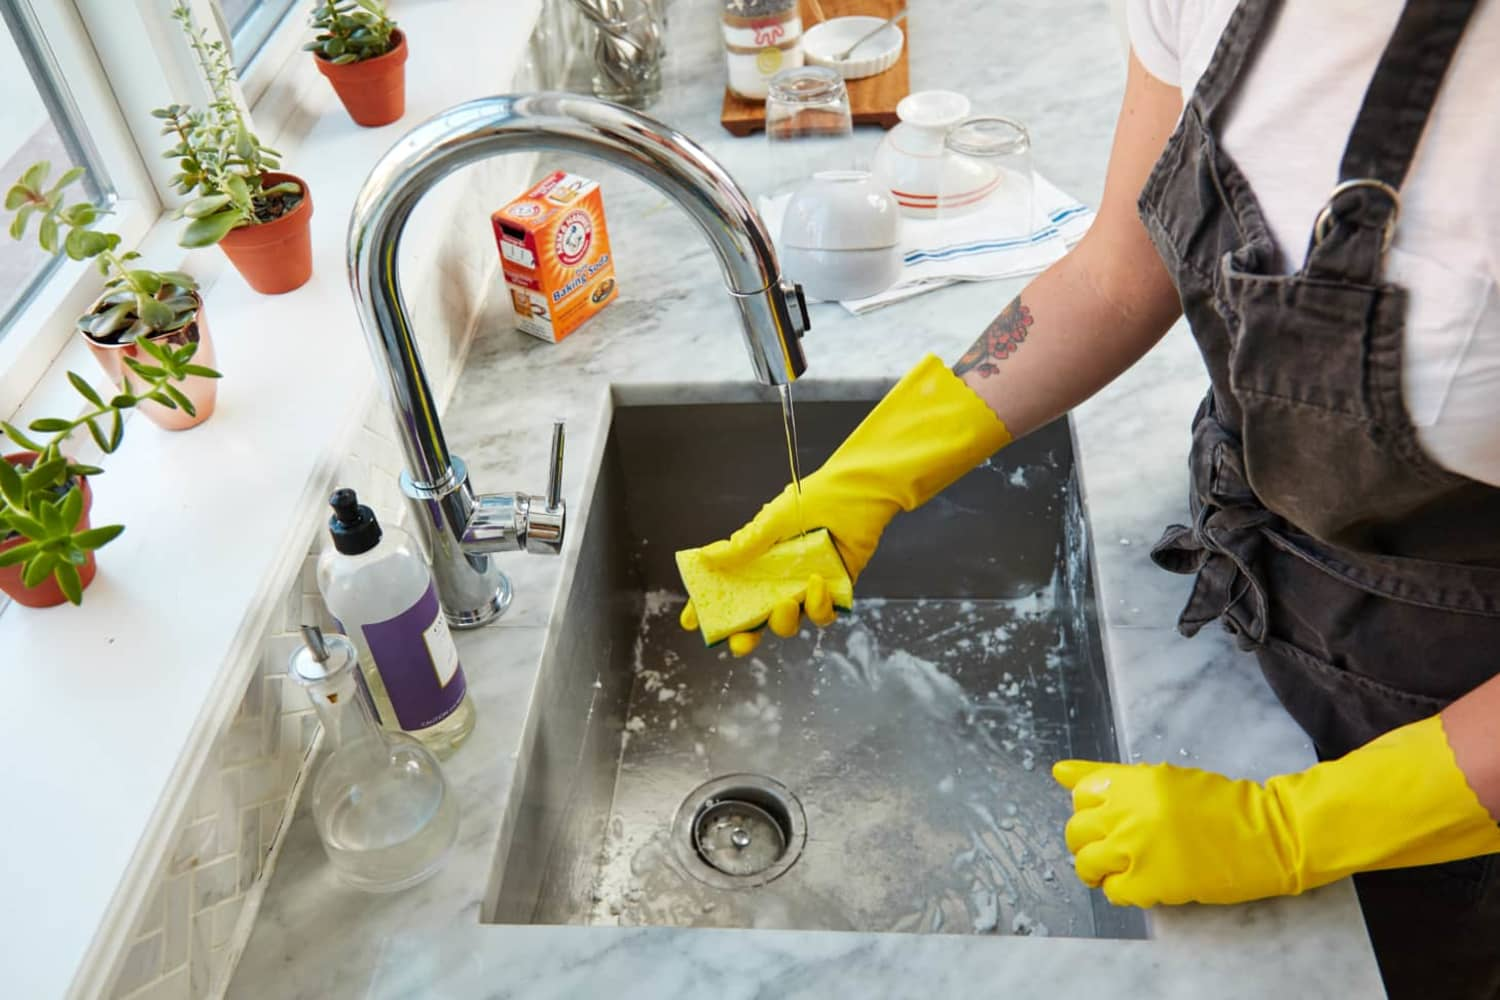 The Surprising Place to Shop for Eco-Friendly Cleaning Products